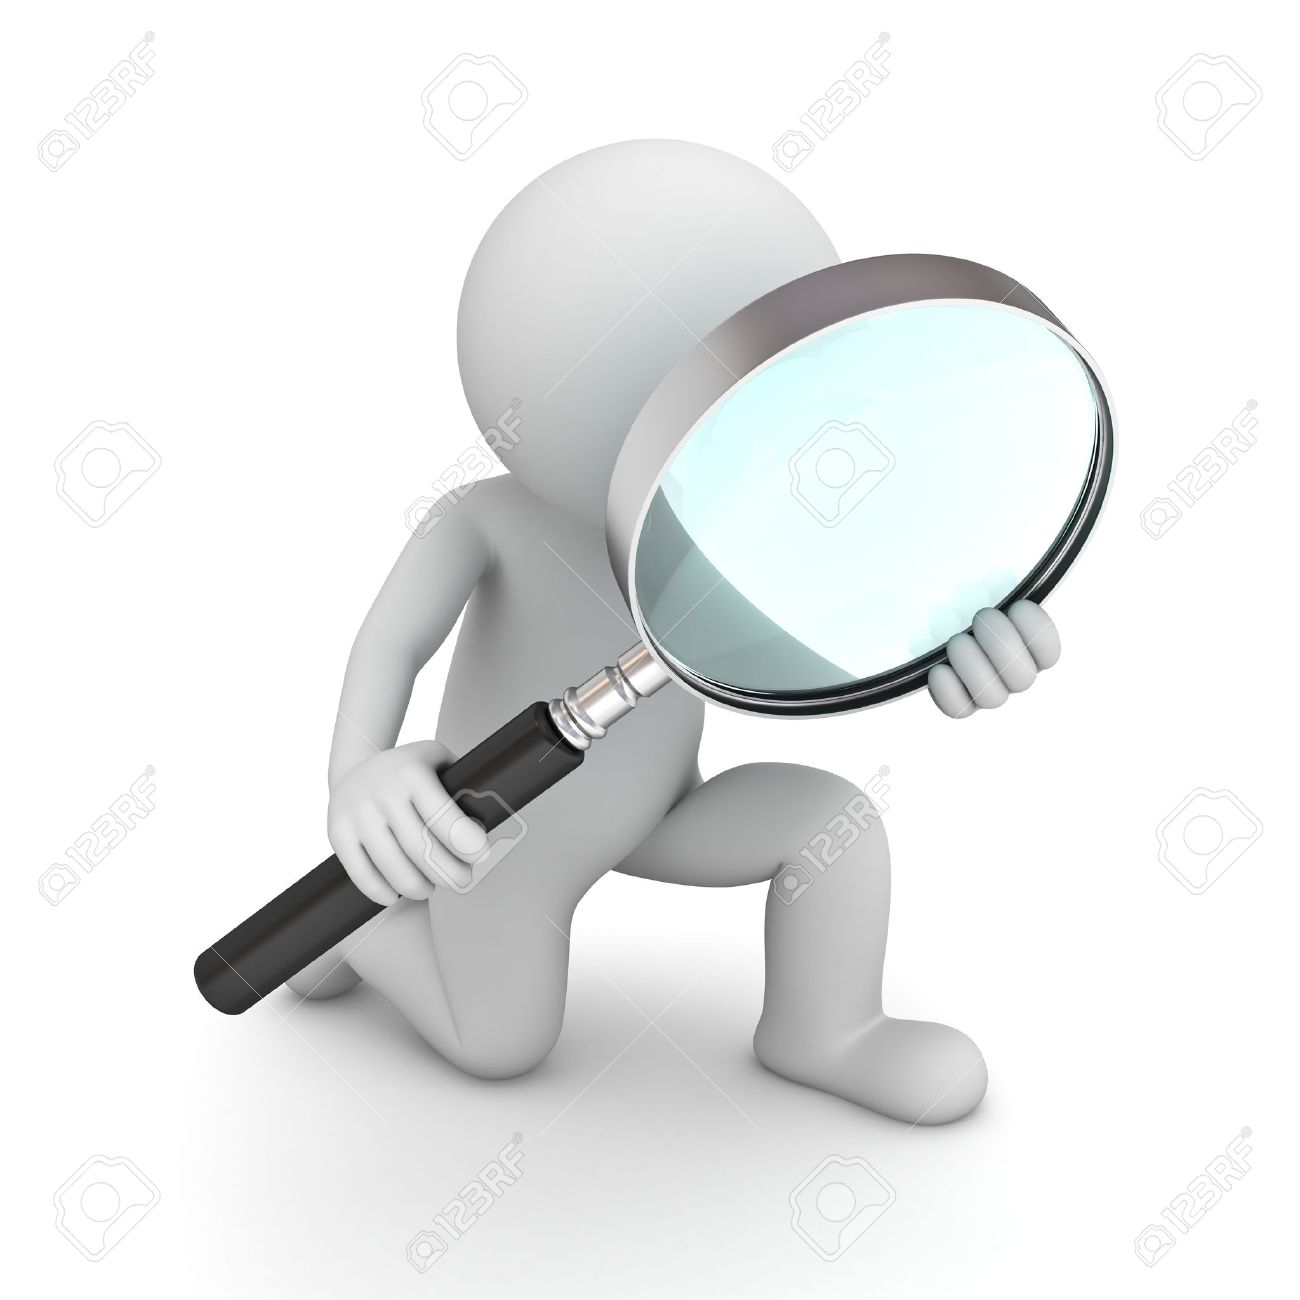 Magnifying Glass Transparent Background